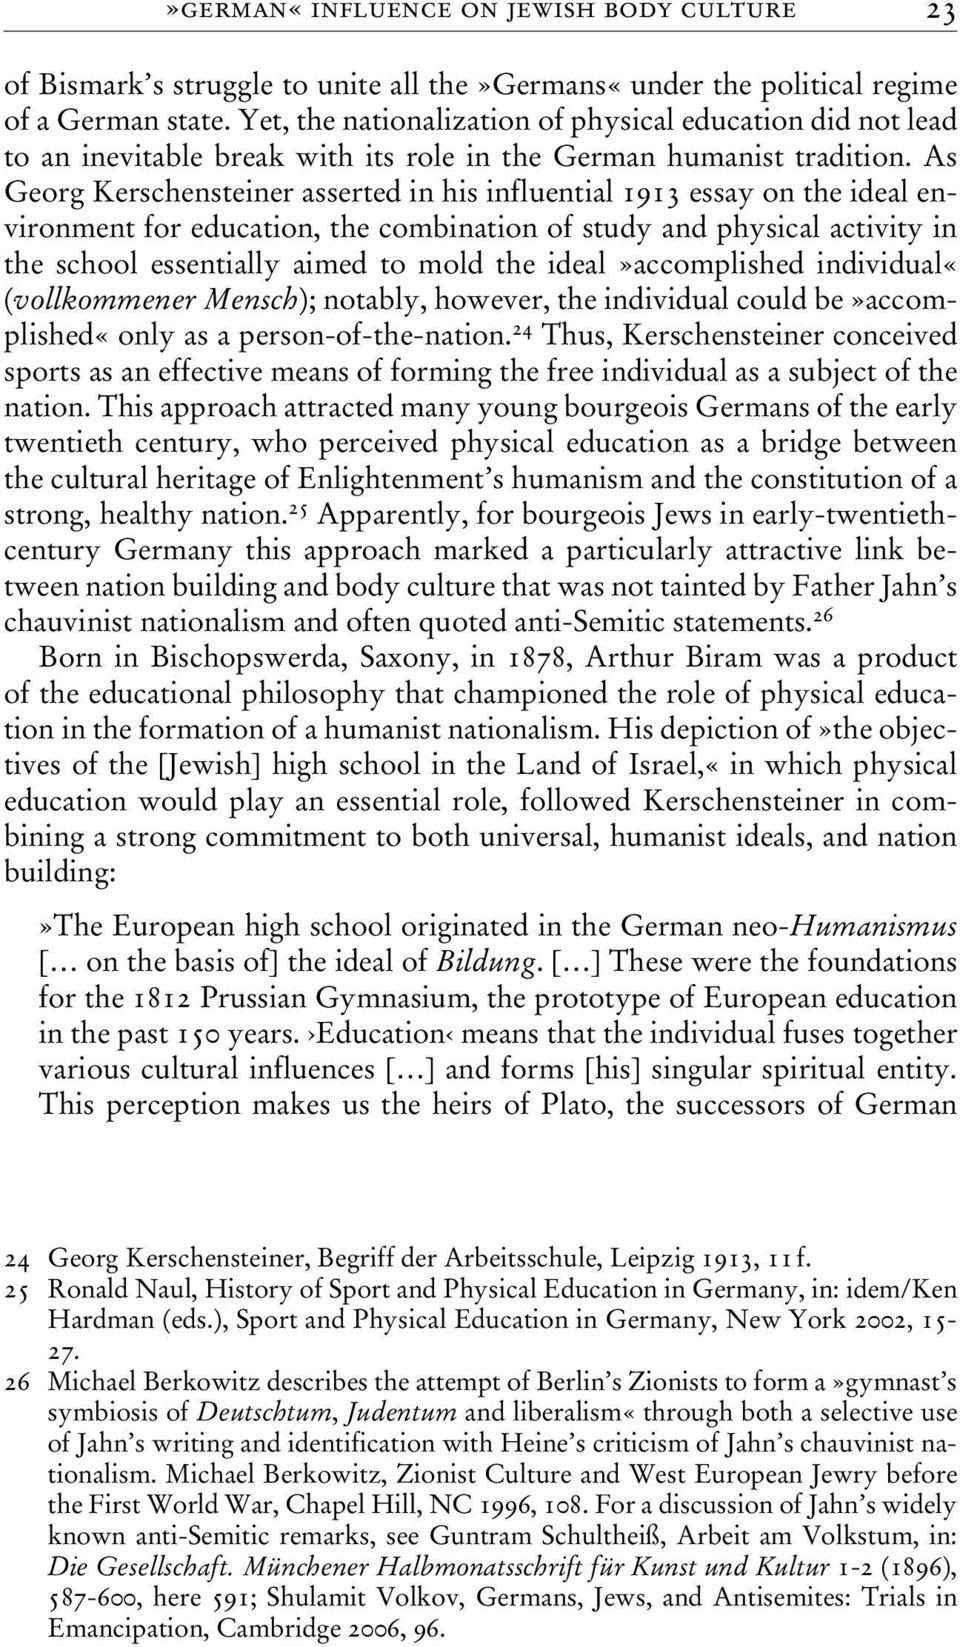 As Georg Kerschensteiner asserted in his influential 1913 essay on the ideal environment for education, the combination of study and physical activity in the school essentially aimed to mold the